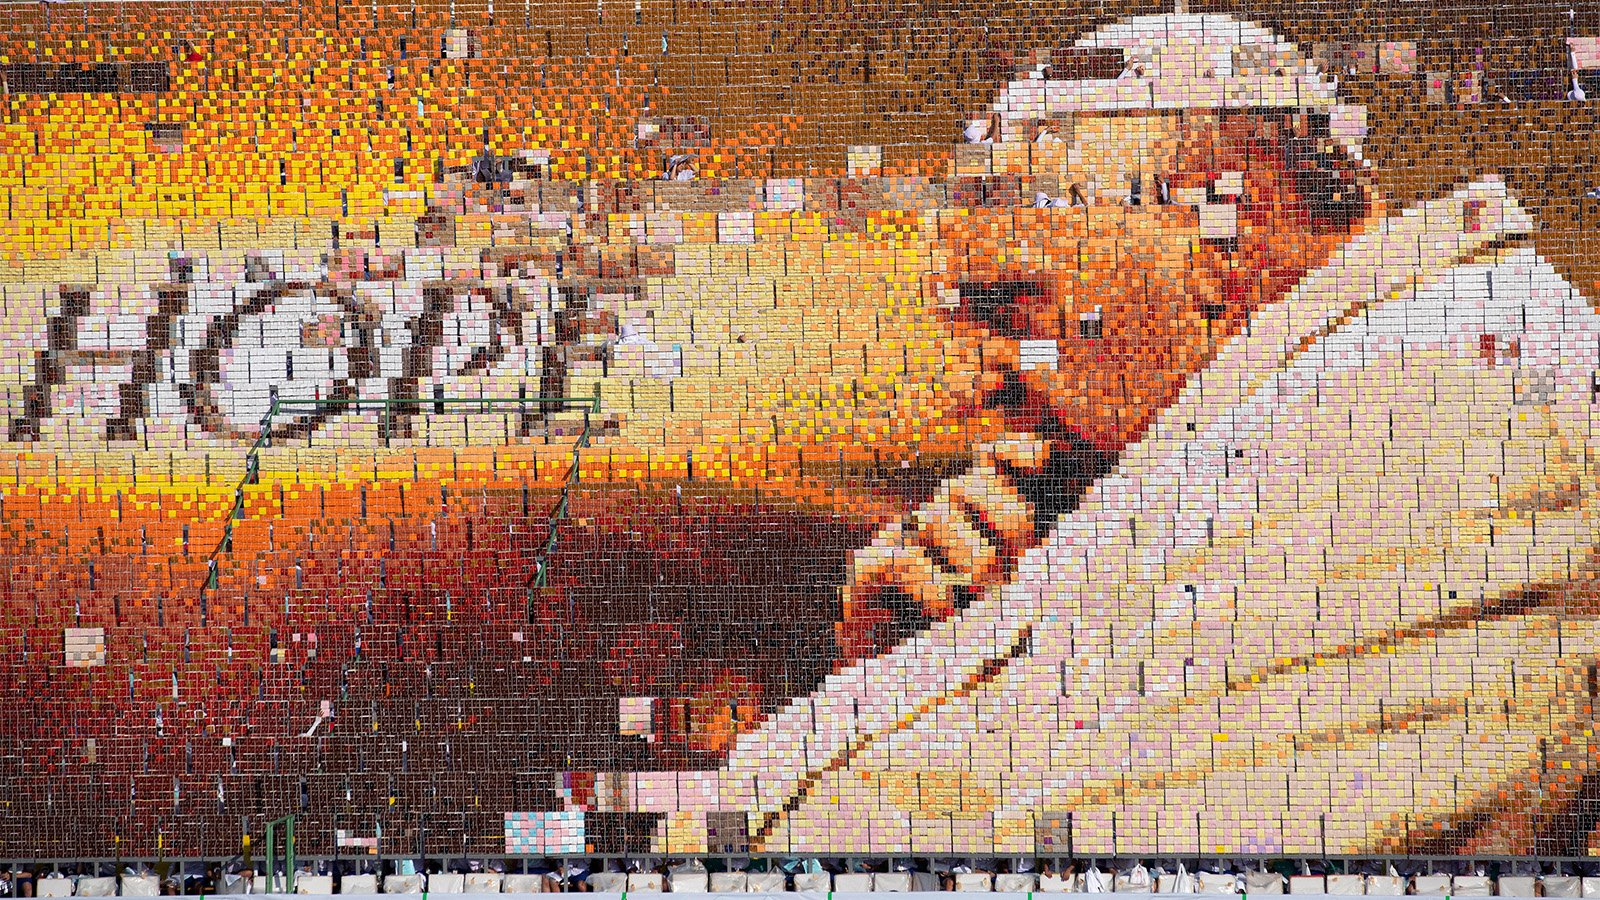 Students practice flipping boards with photos to reveal a full-mosaic portrait of Pope Francis before a Mass at National Stadium in Bangkok on Nov. 21, 2019. (AP Photo/Sakchai Lalit)